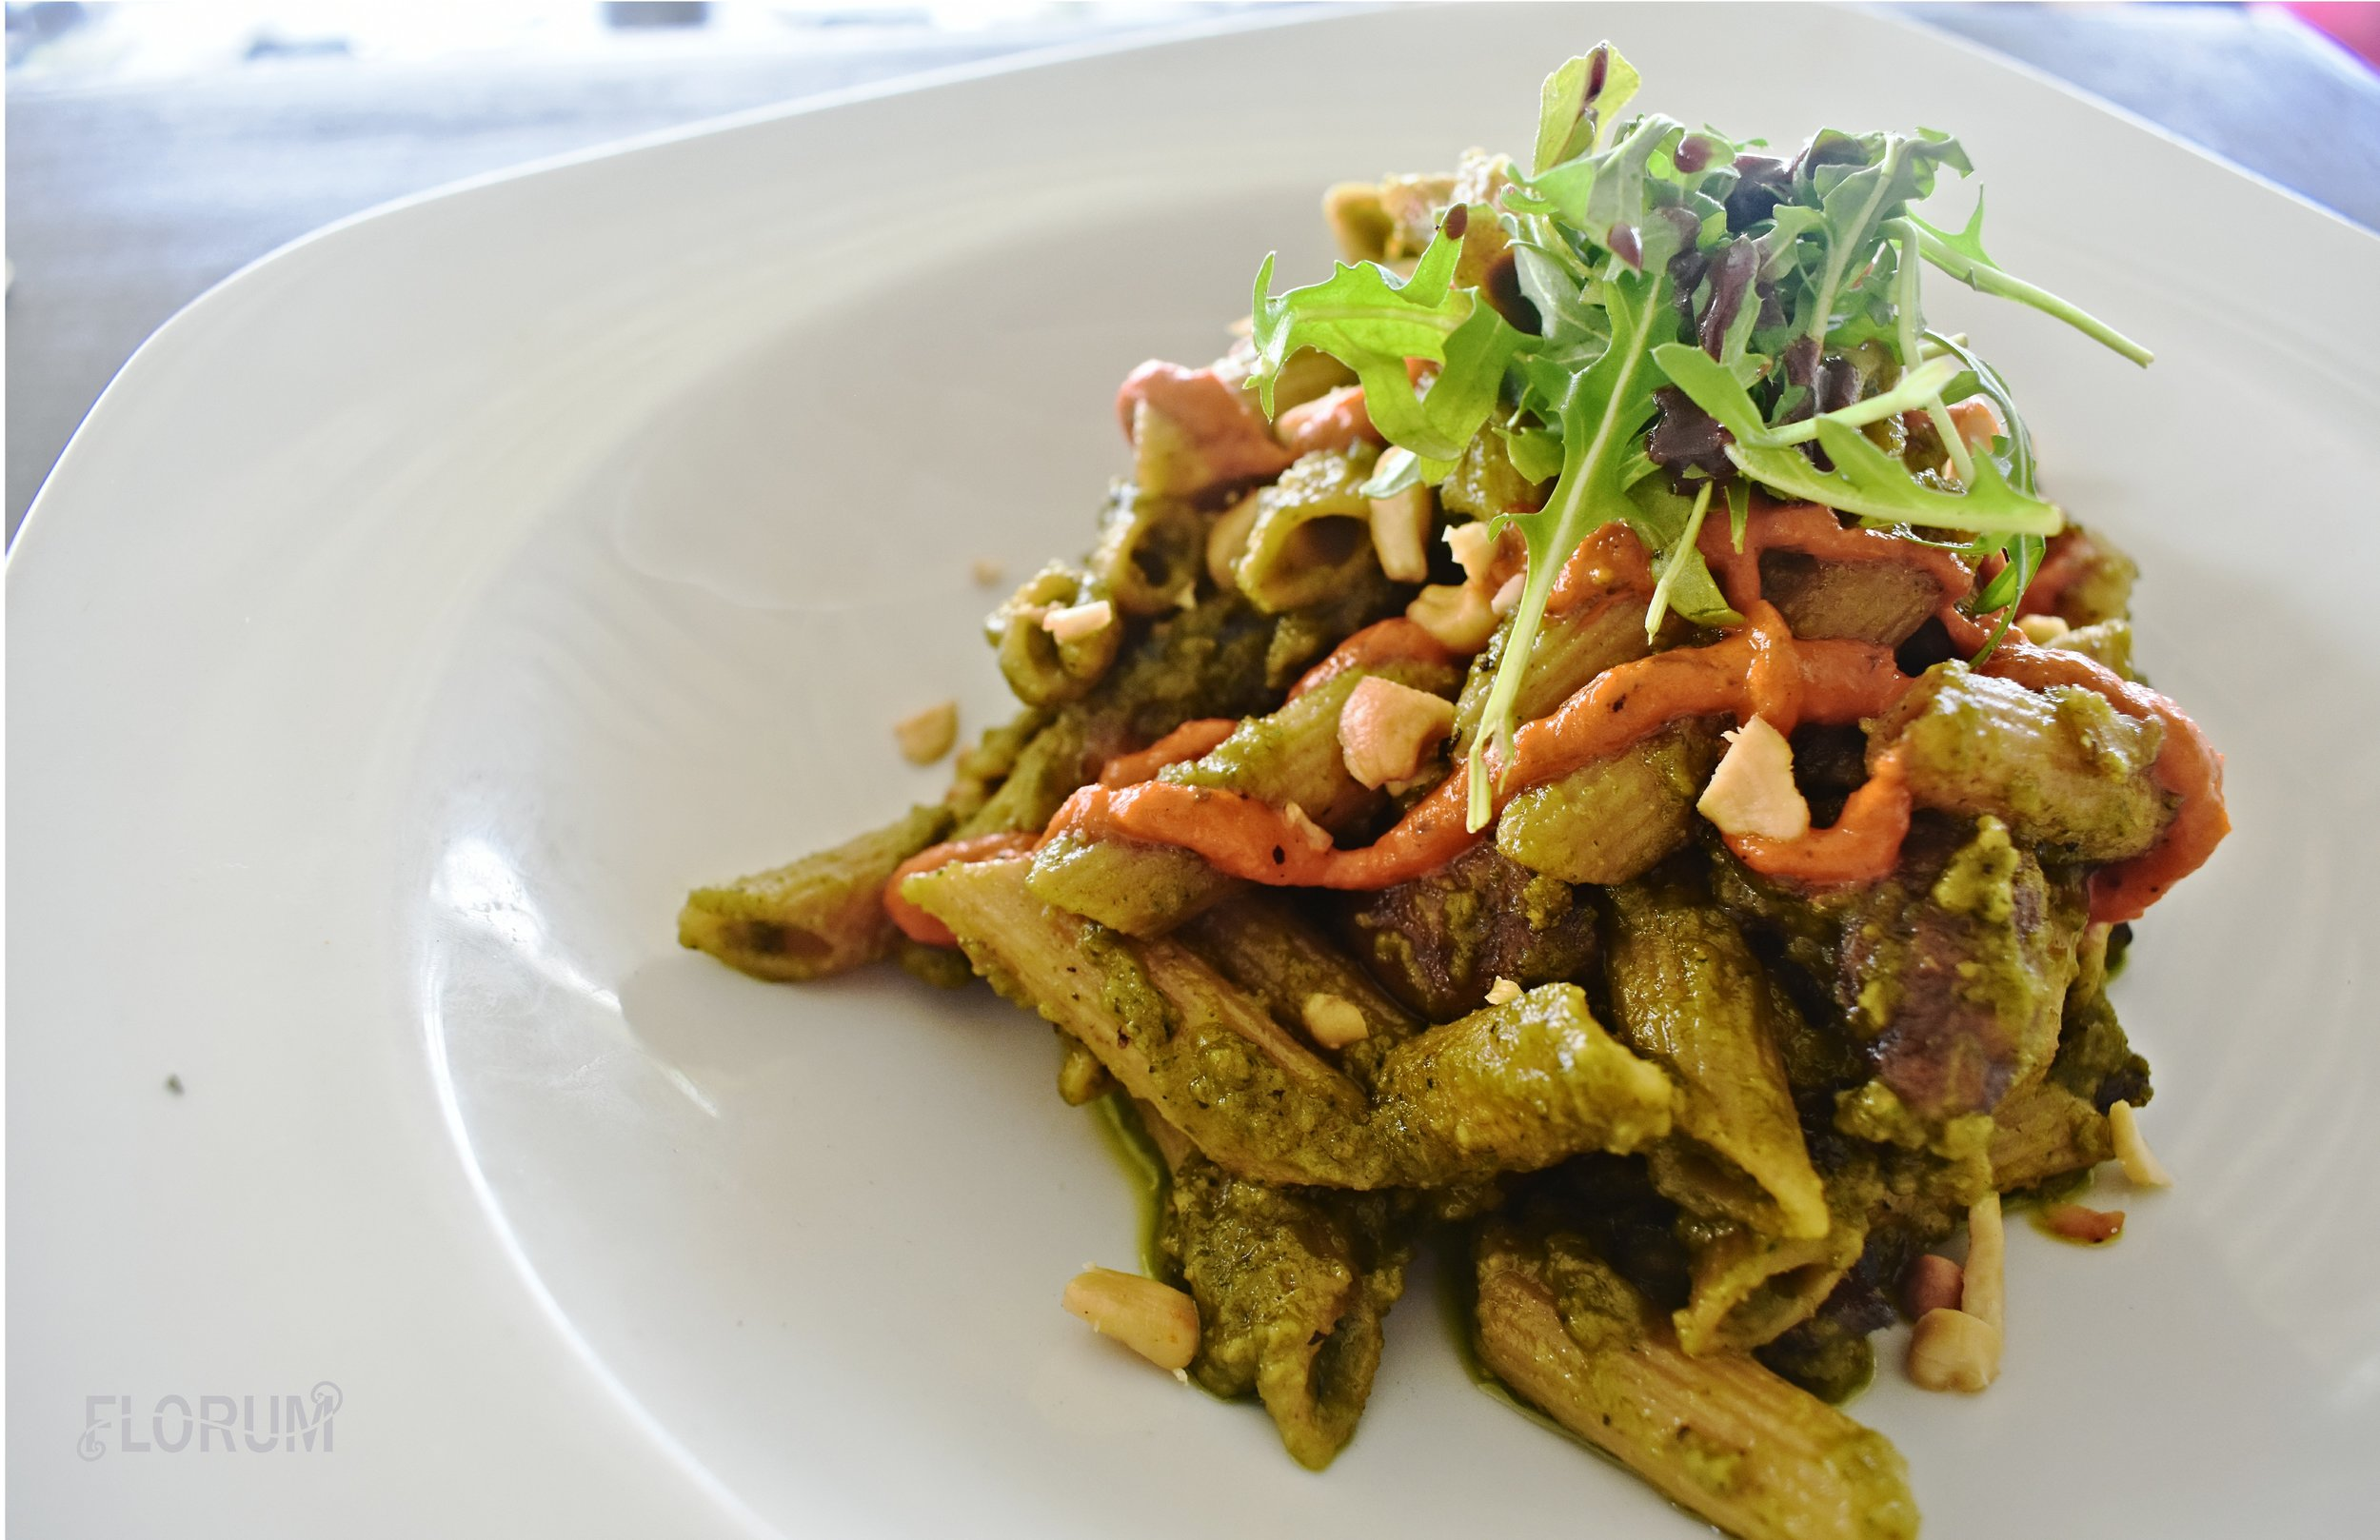 Another favorite that I had on my last day in Barbados before catching my flight was the vegan pesto, pine nut pasta salad.